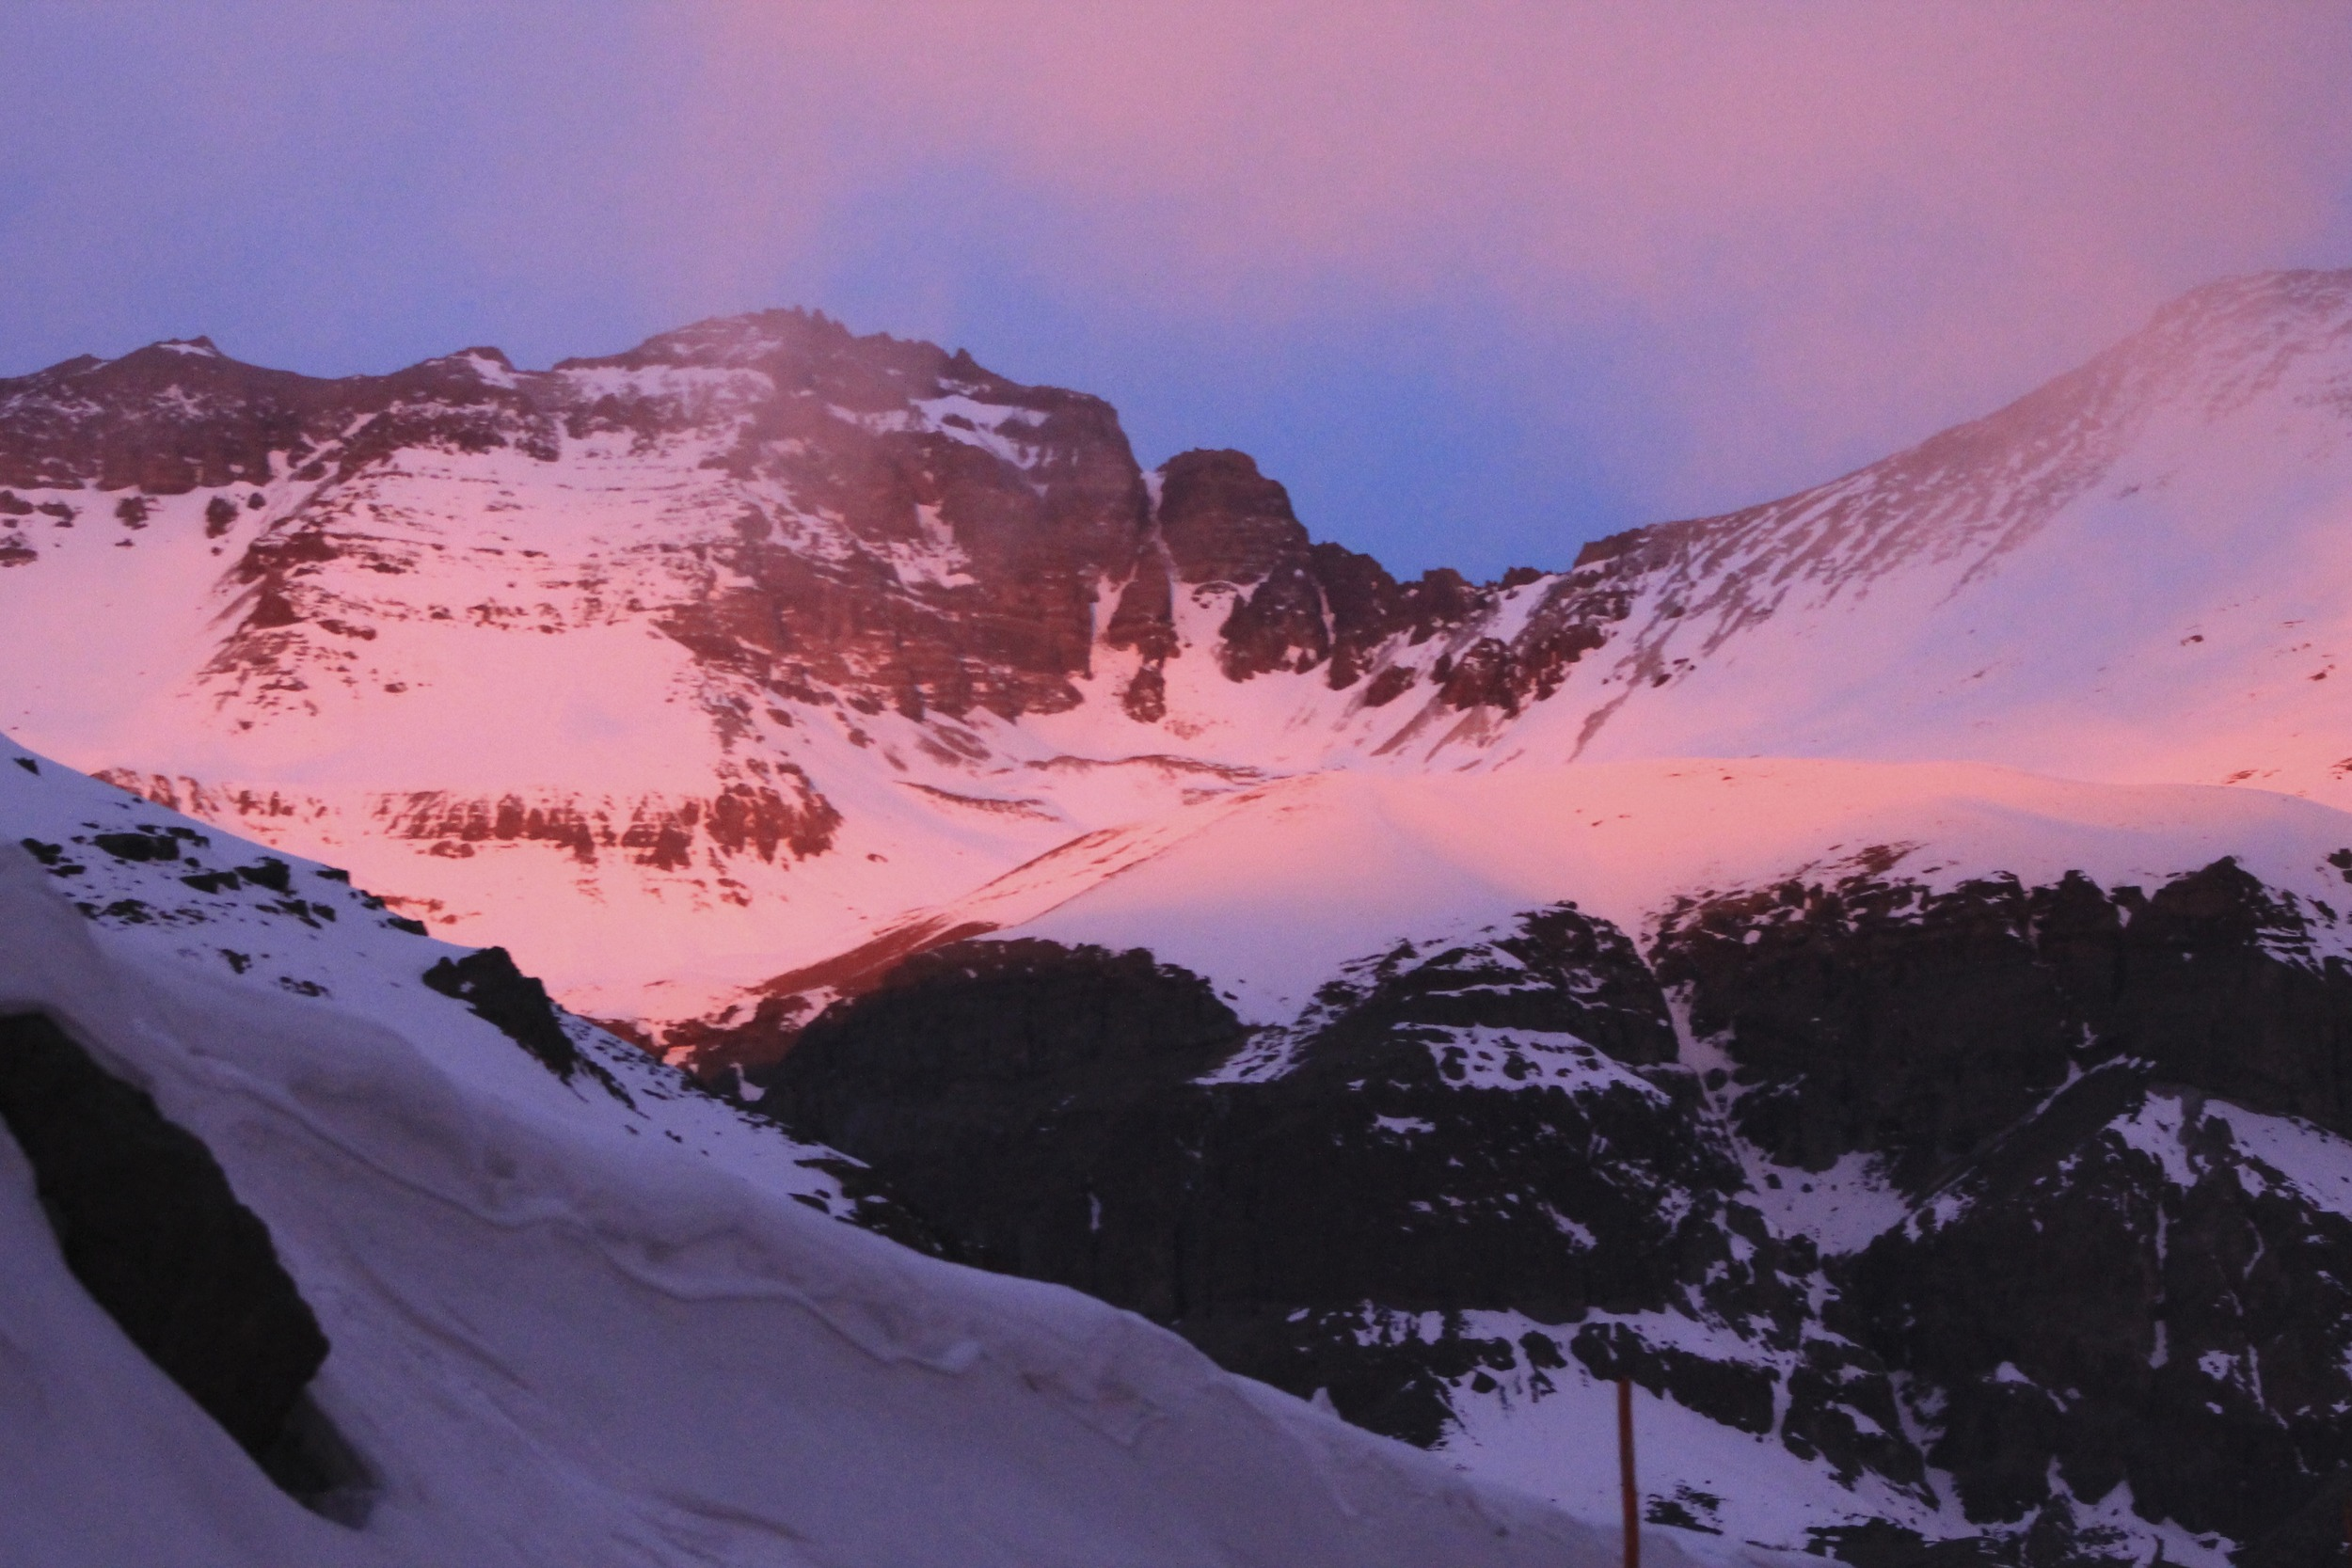 Nothing like an Andes sunset